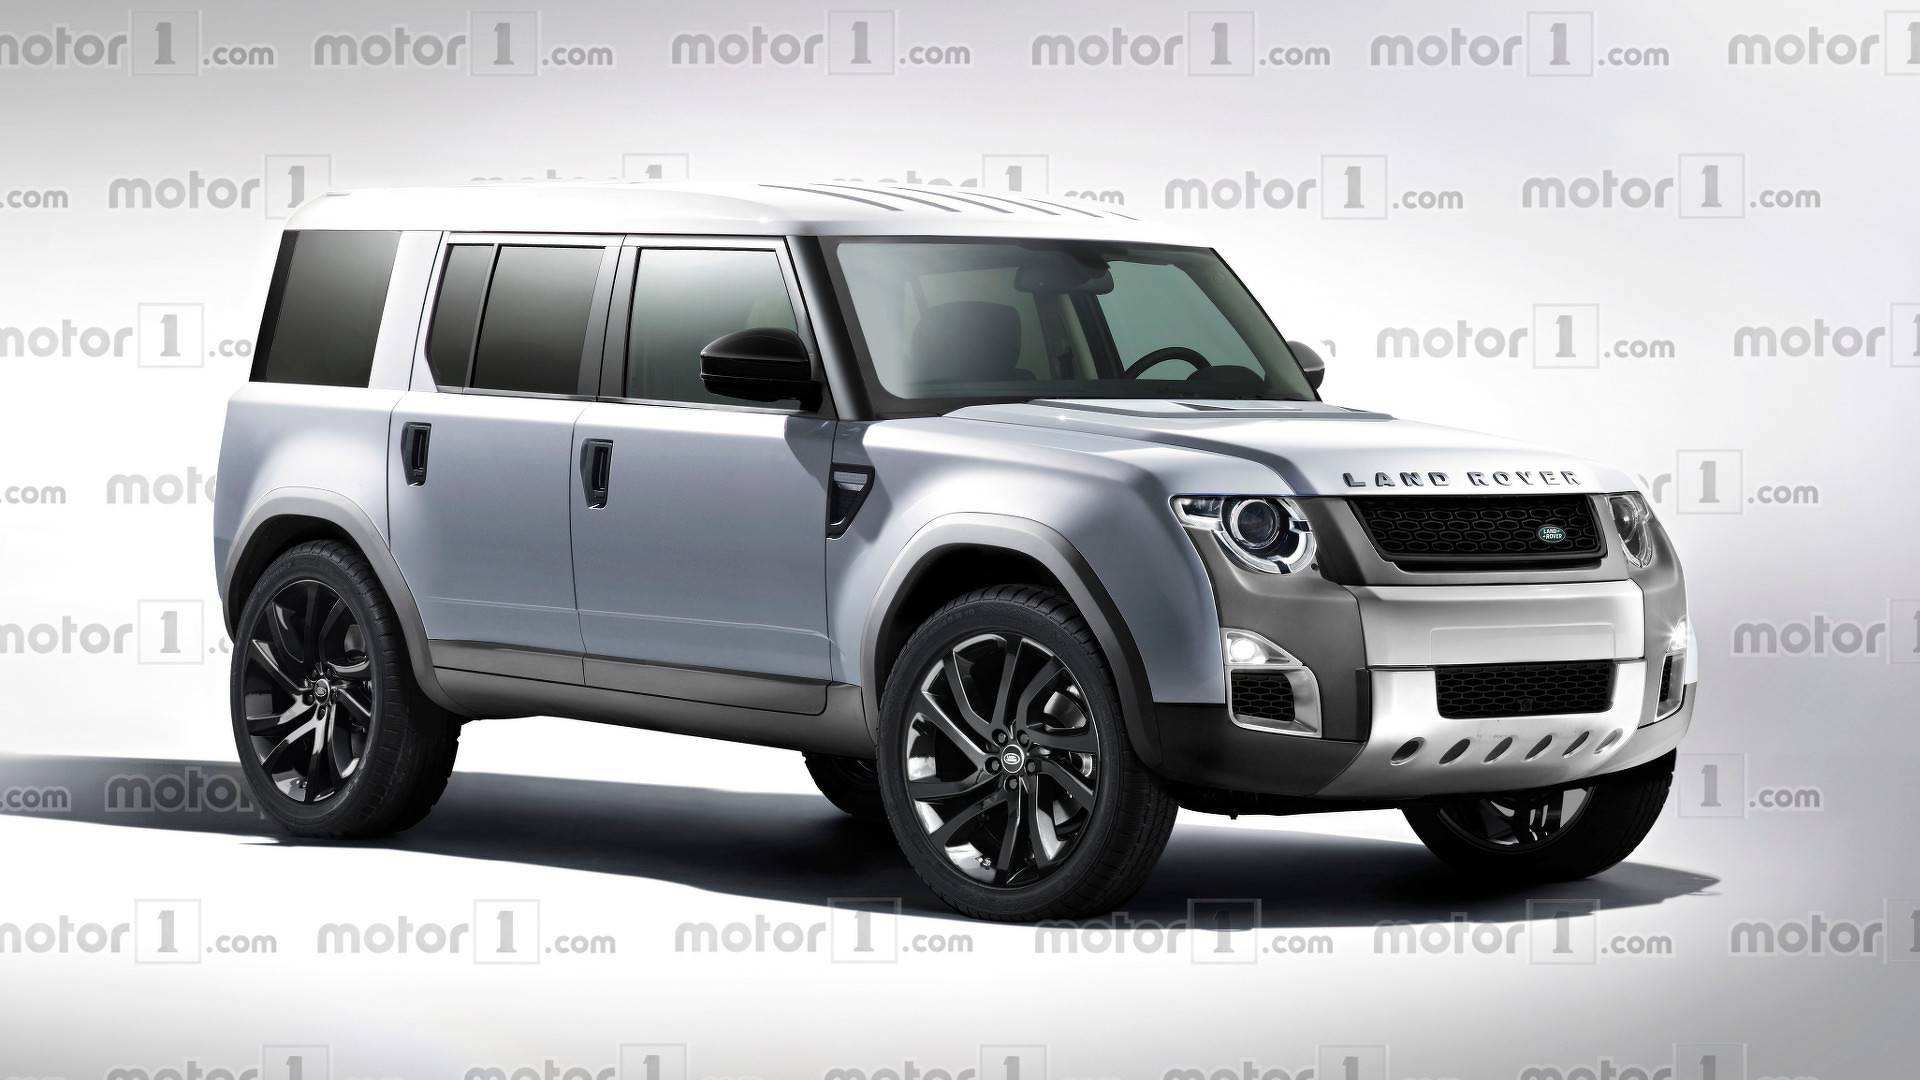 81 Concept of 2019 Land Rover Defender Price and Review with 2019 Land Rover Defender